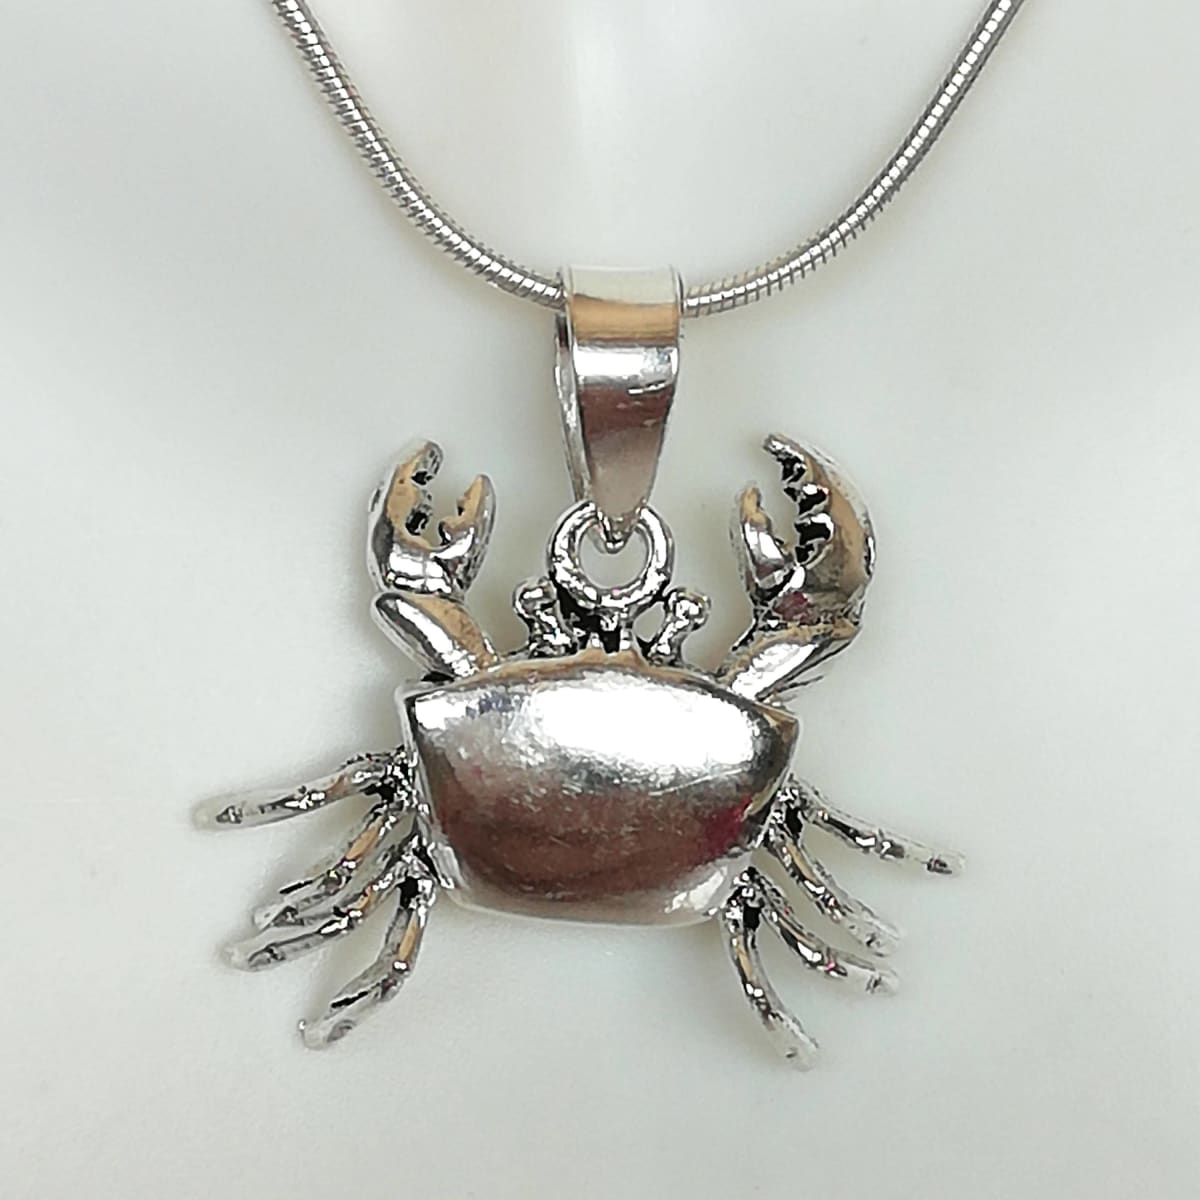 necklaces Crab Pendant - Silver Necklace - Neck Charm - Beach Jewelry - Cute Gifts - Bracelet - Unisex - PD224 - by NeverEndingSilver